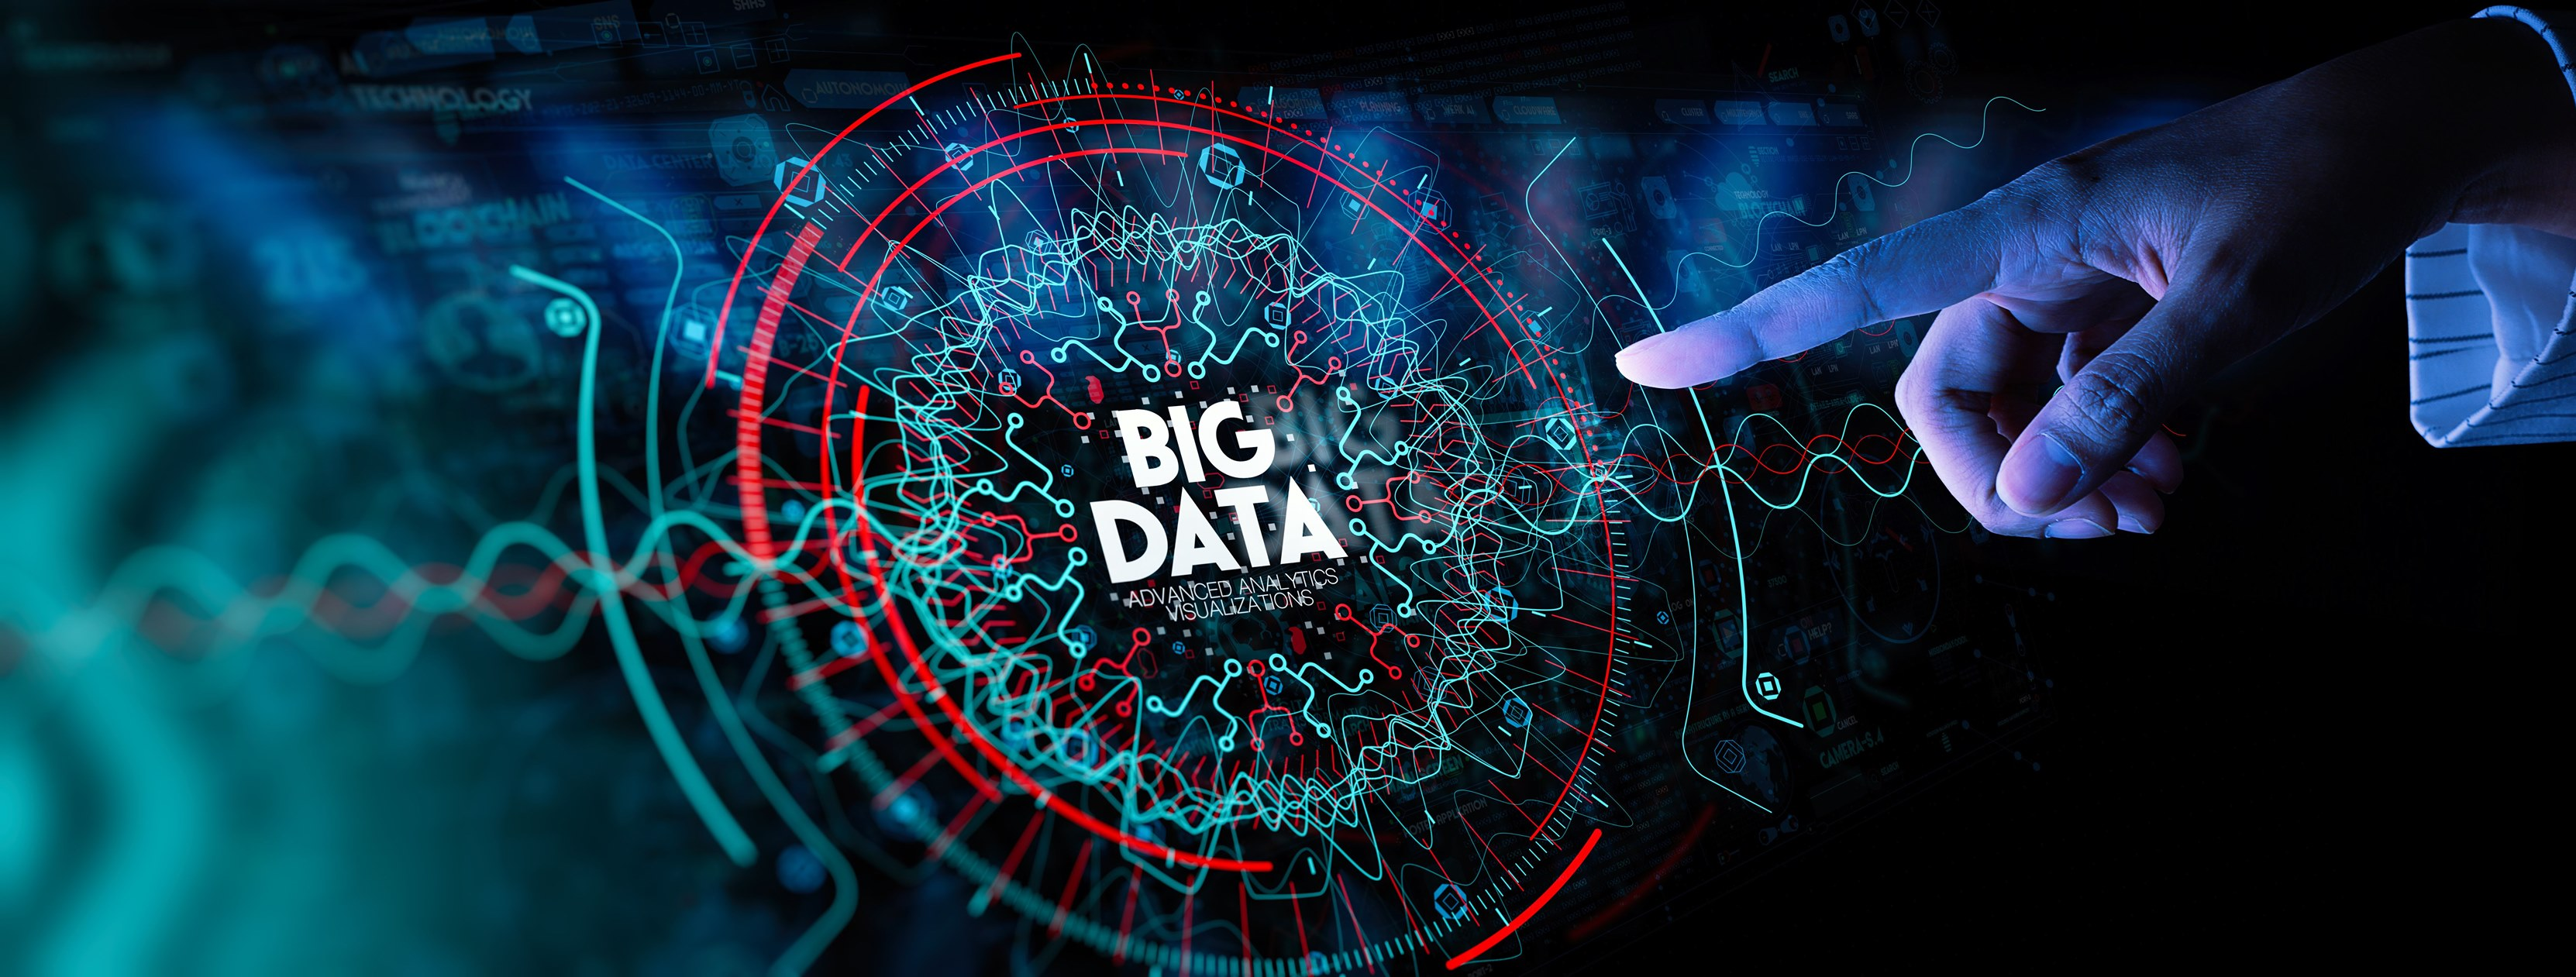 Talking Data-Our Life In The Era Of Big Data